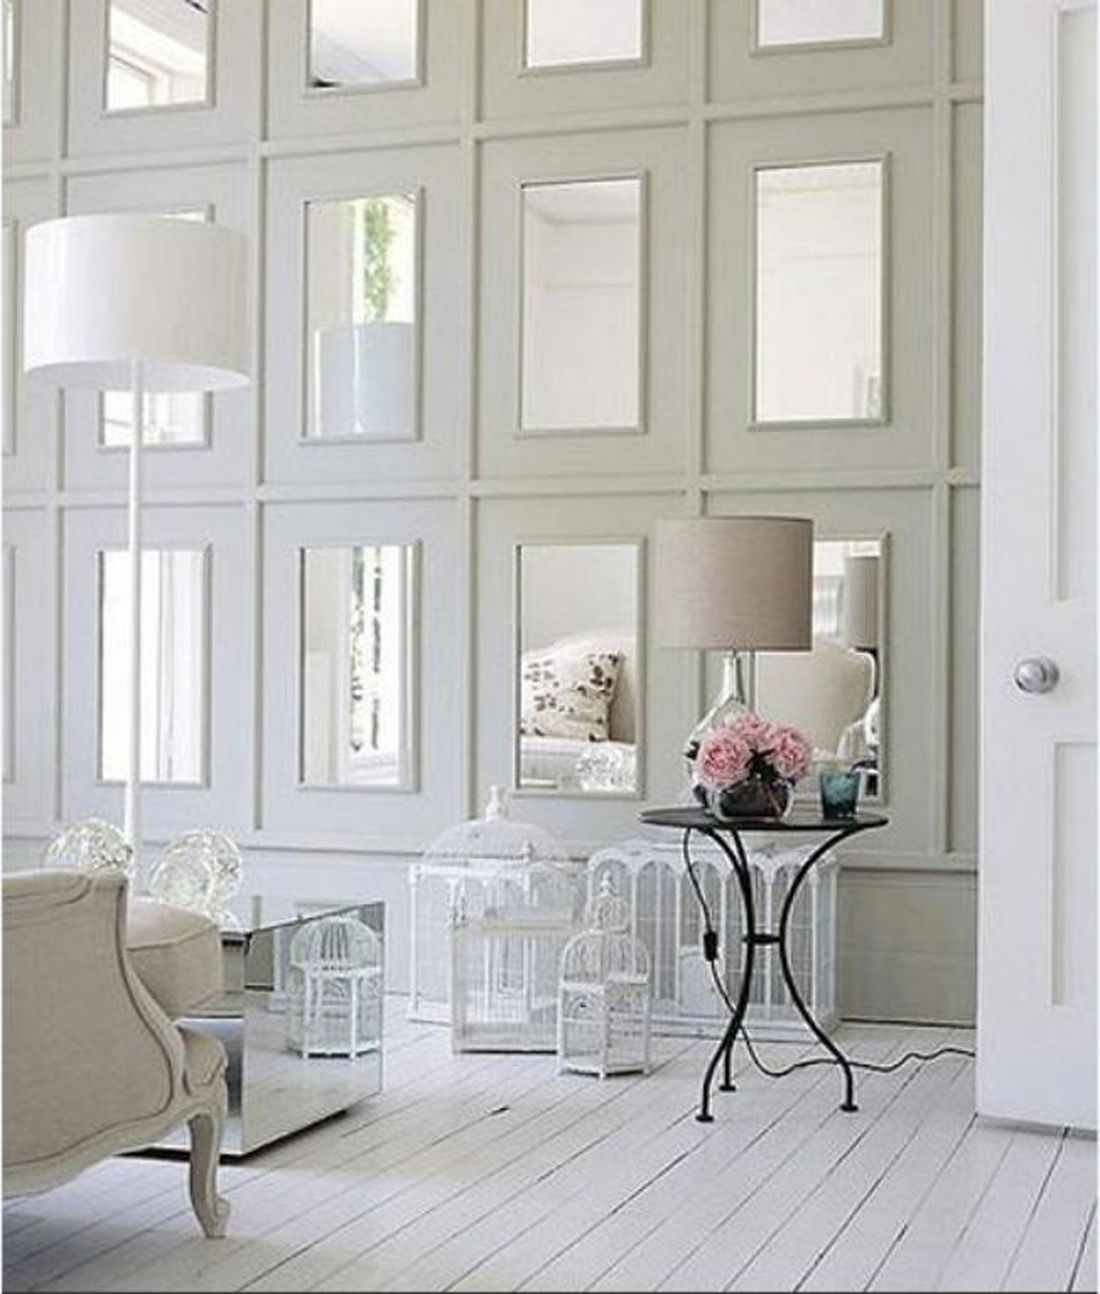 Reflections And Mirrors Strategies For A Beautiful Home Interior House Interior Home